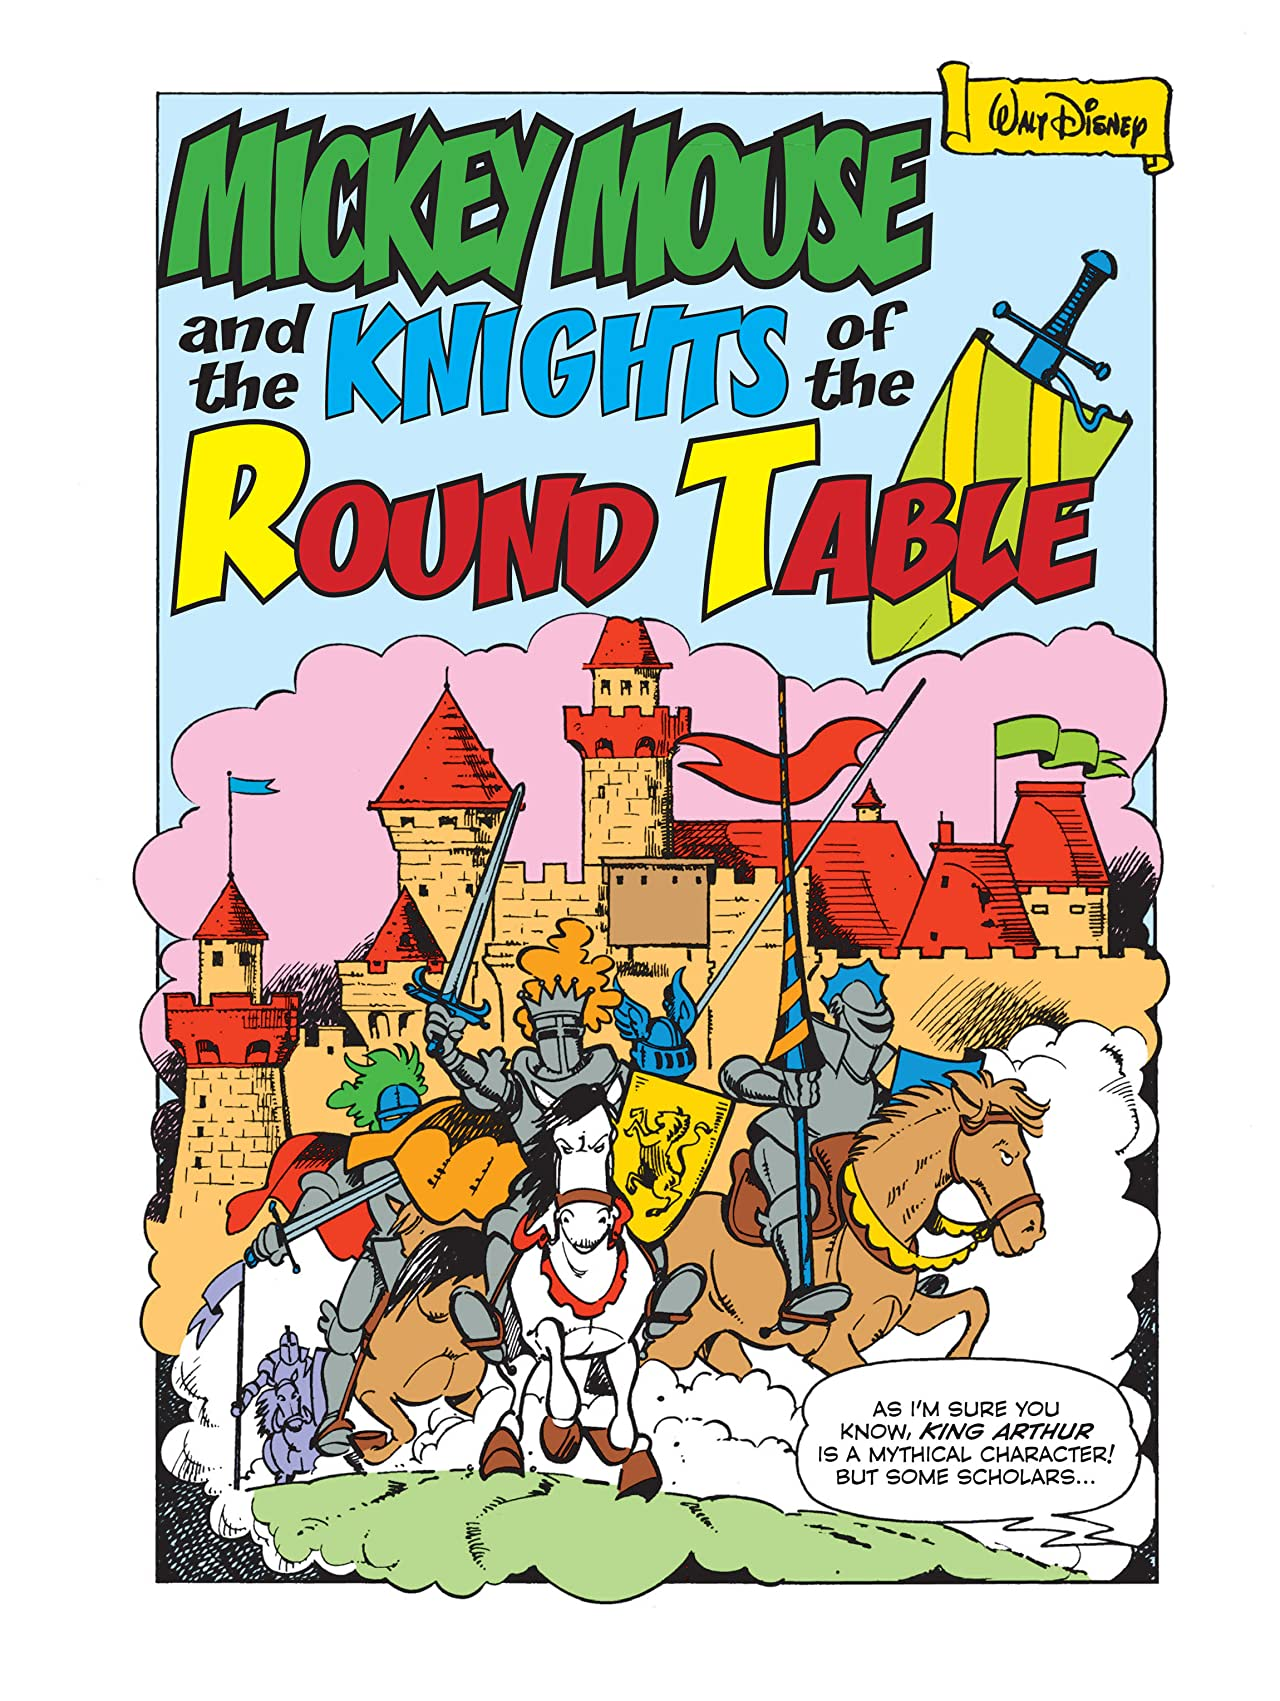 Mickey Mouse and the Knights of the Round Table